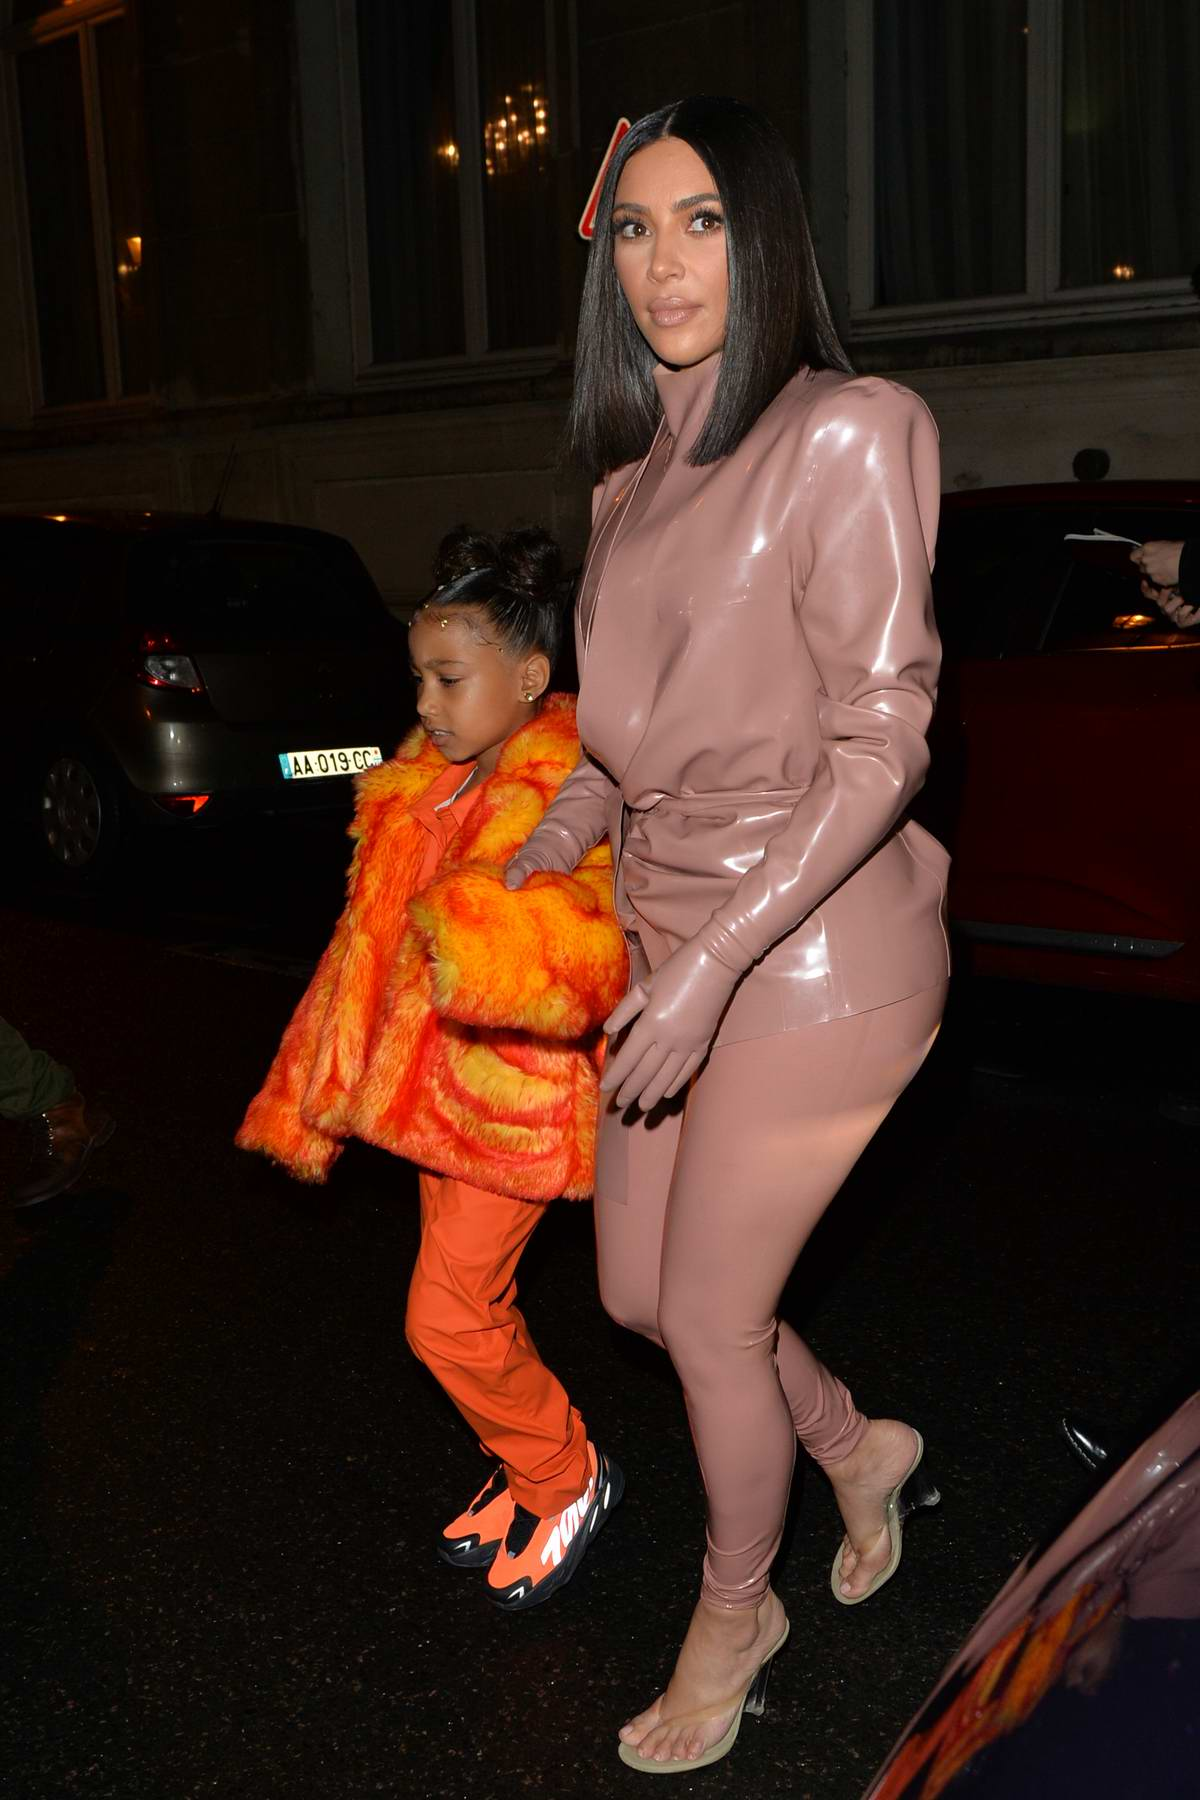 Kim Kardashian rocks her third Balmain latex outfit as she and Kourtney enjoy some family time with the kids in Paris, France